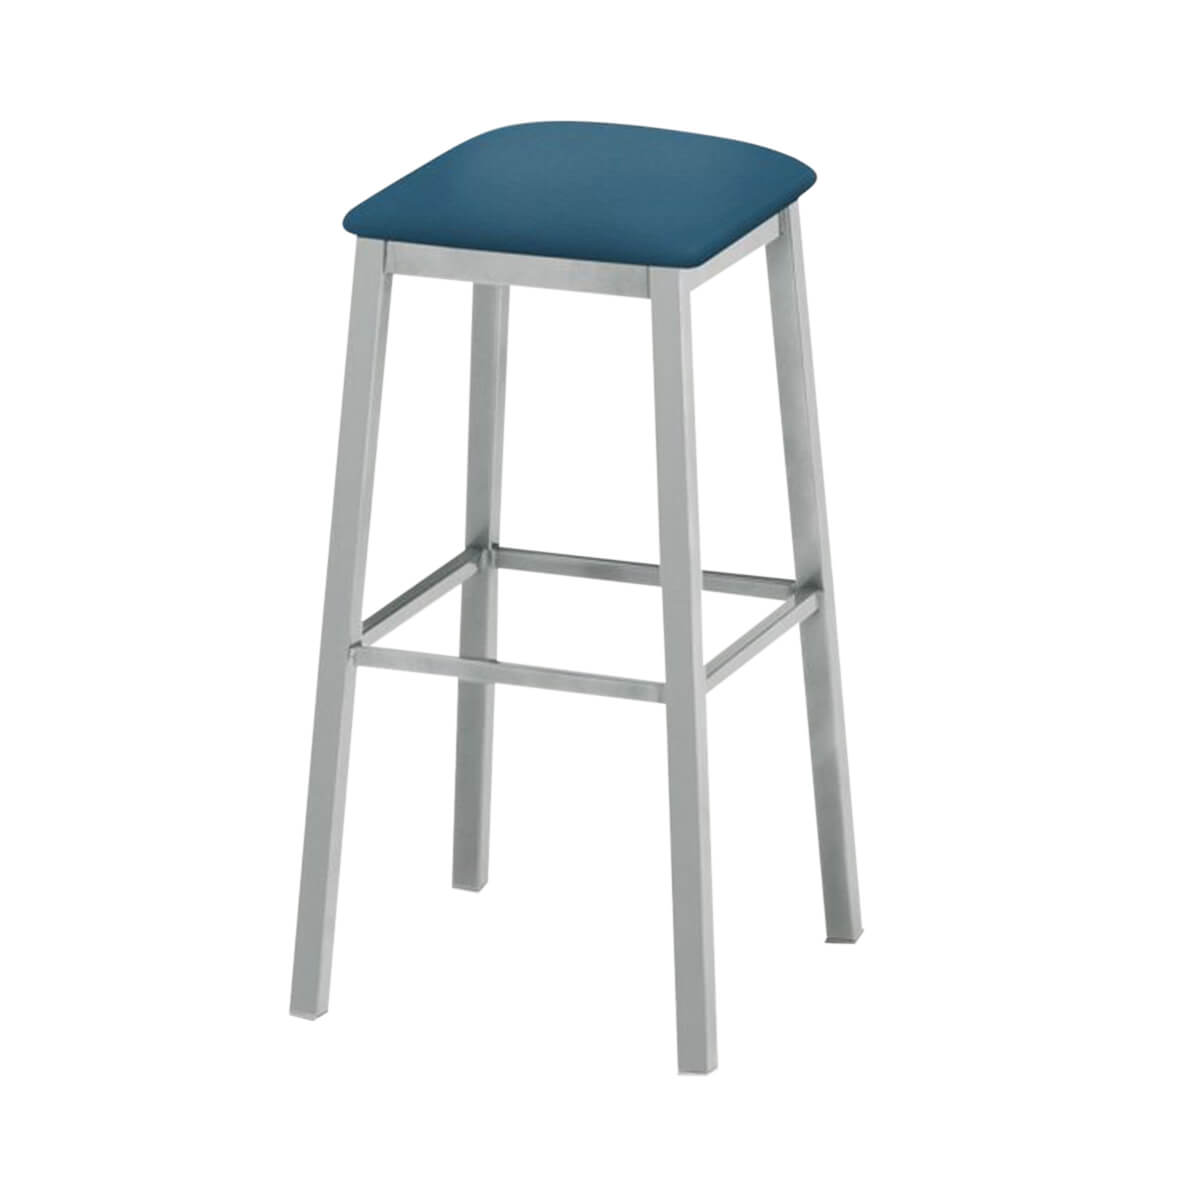 Backless Barstools for Commercial Spaces